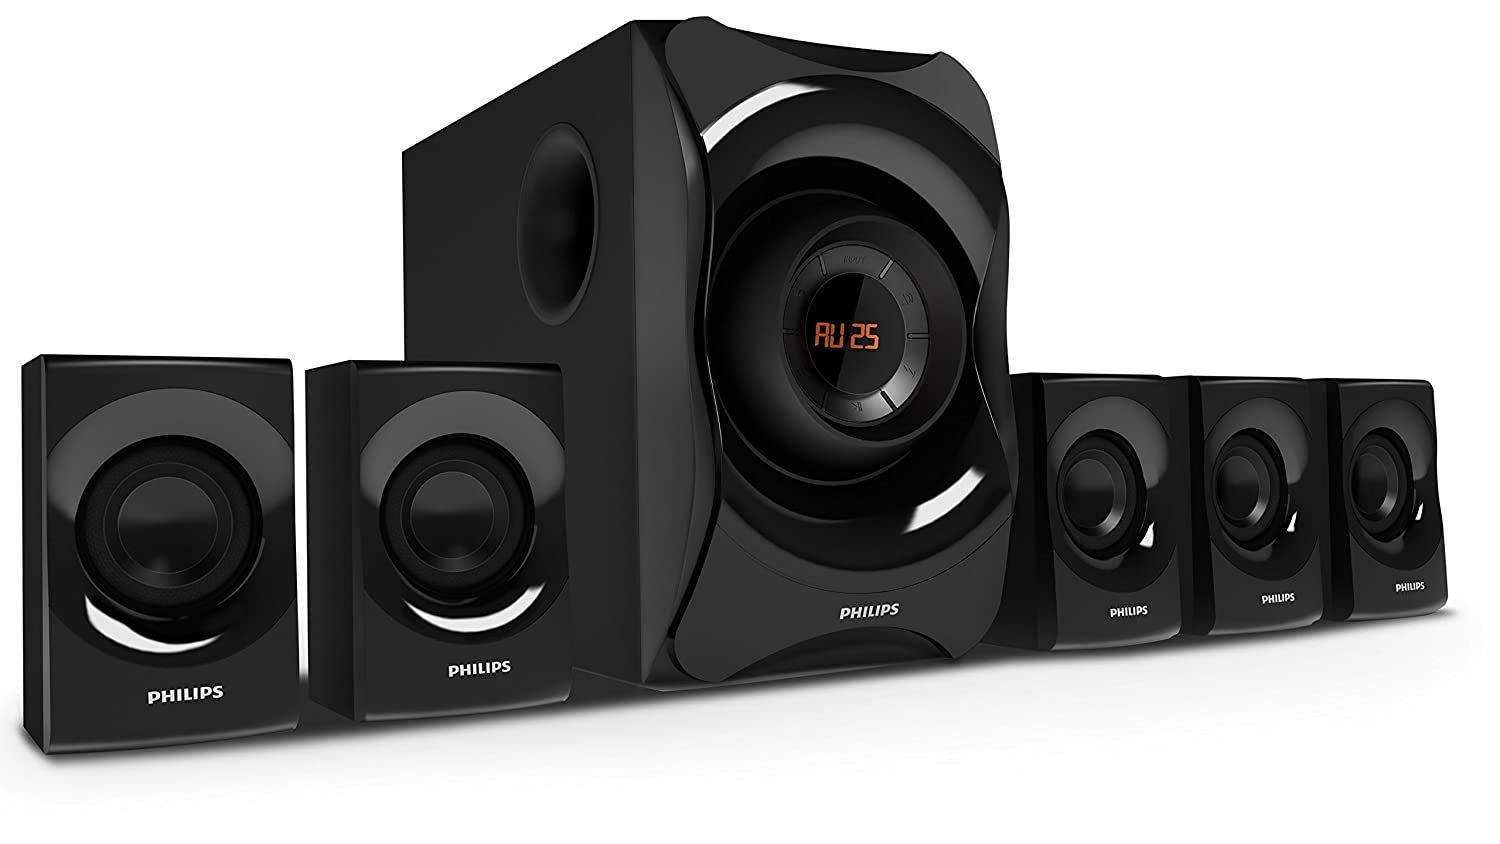 Philips SPA8000B/94 5 1 Channel Multimedia Speakers System (Black)